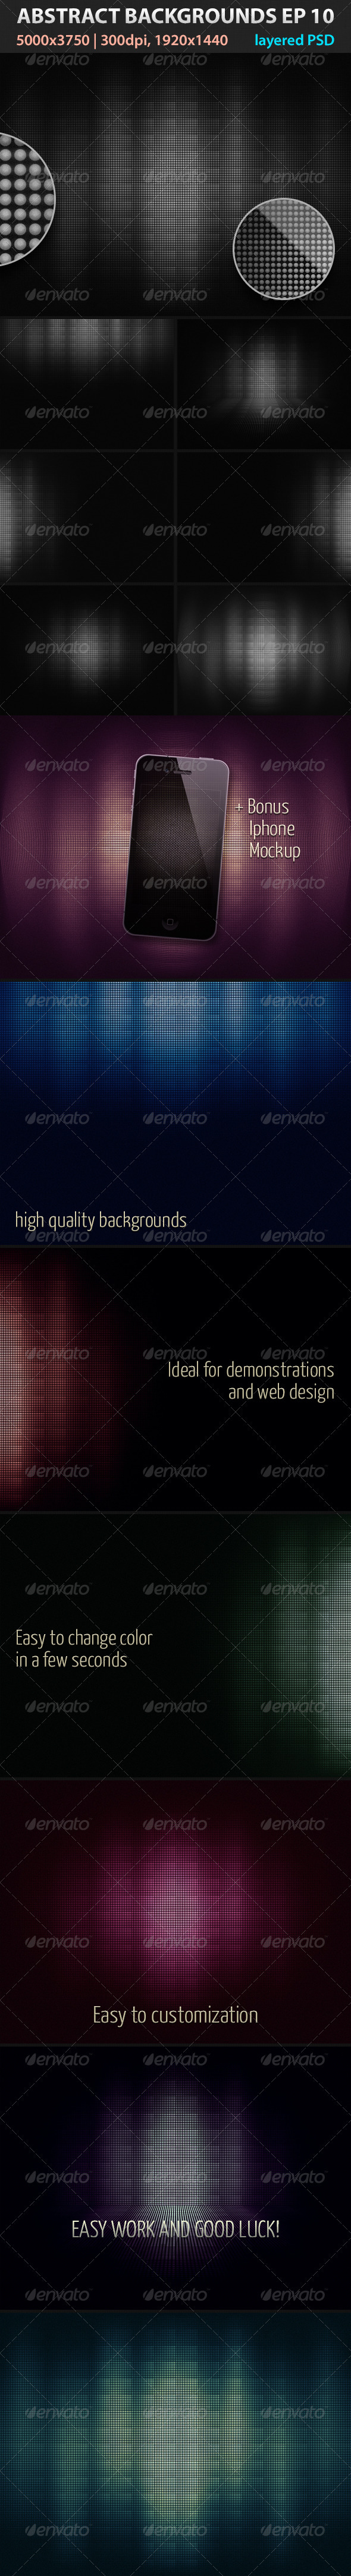 GraphicRiver Absctract Backgrounds EP 10 3213927